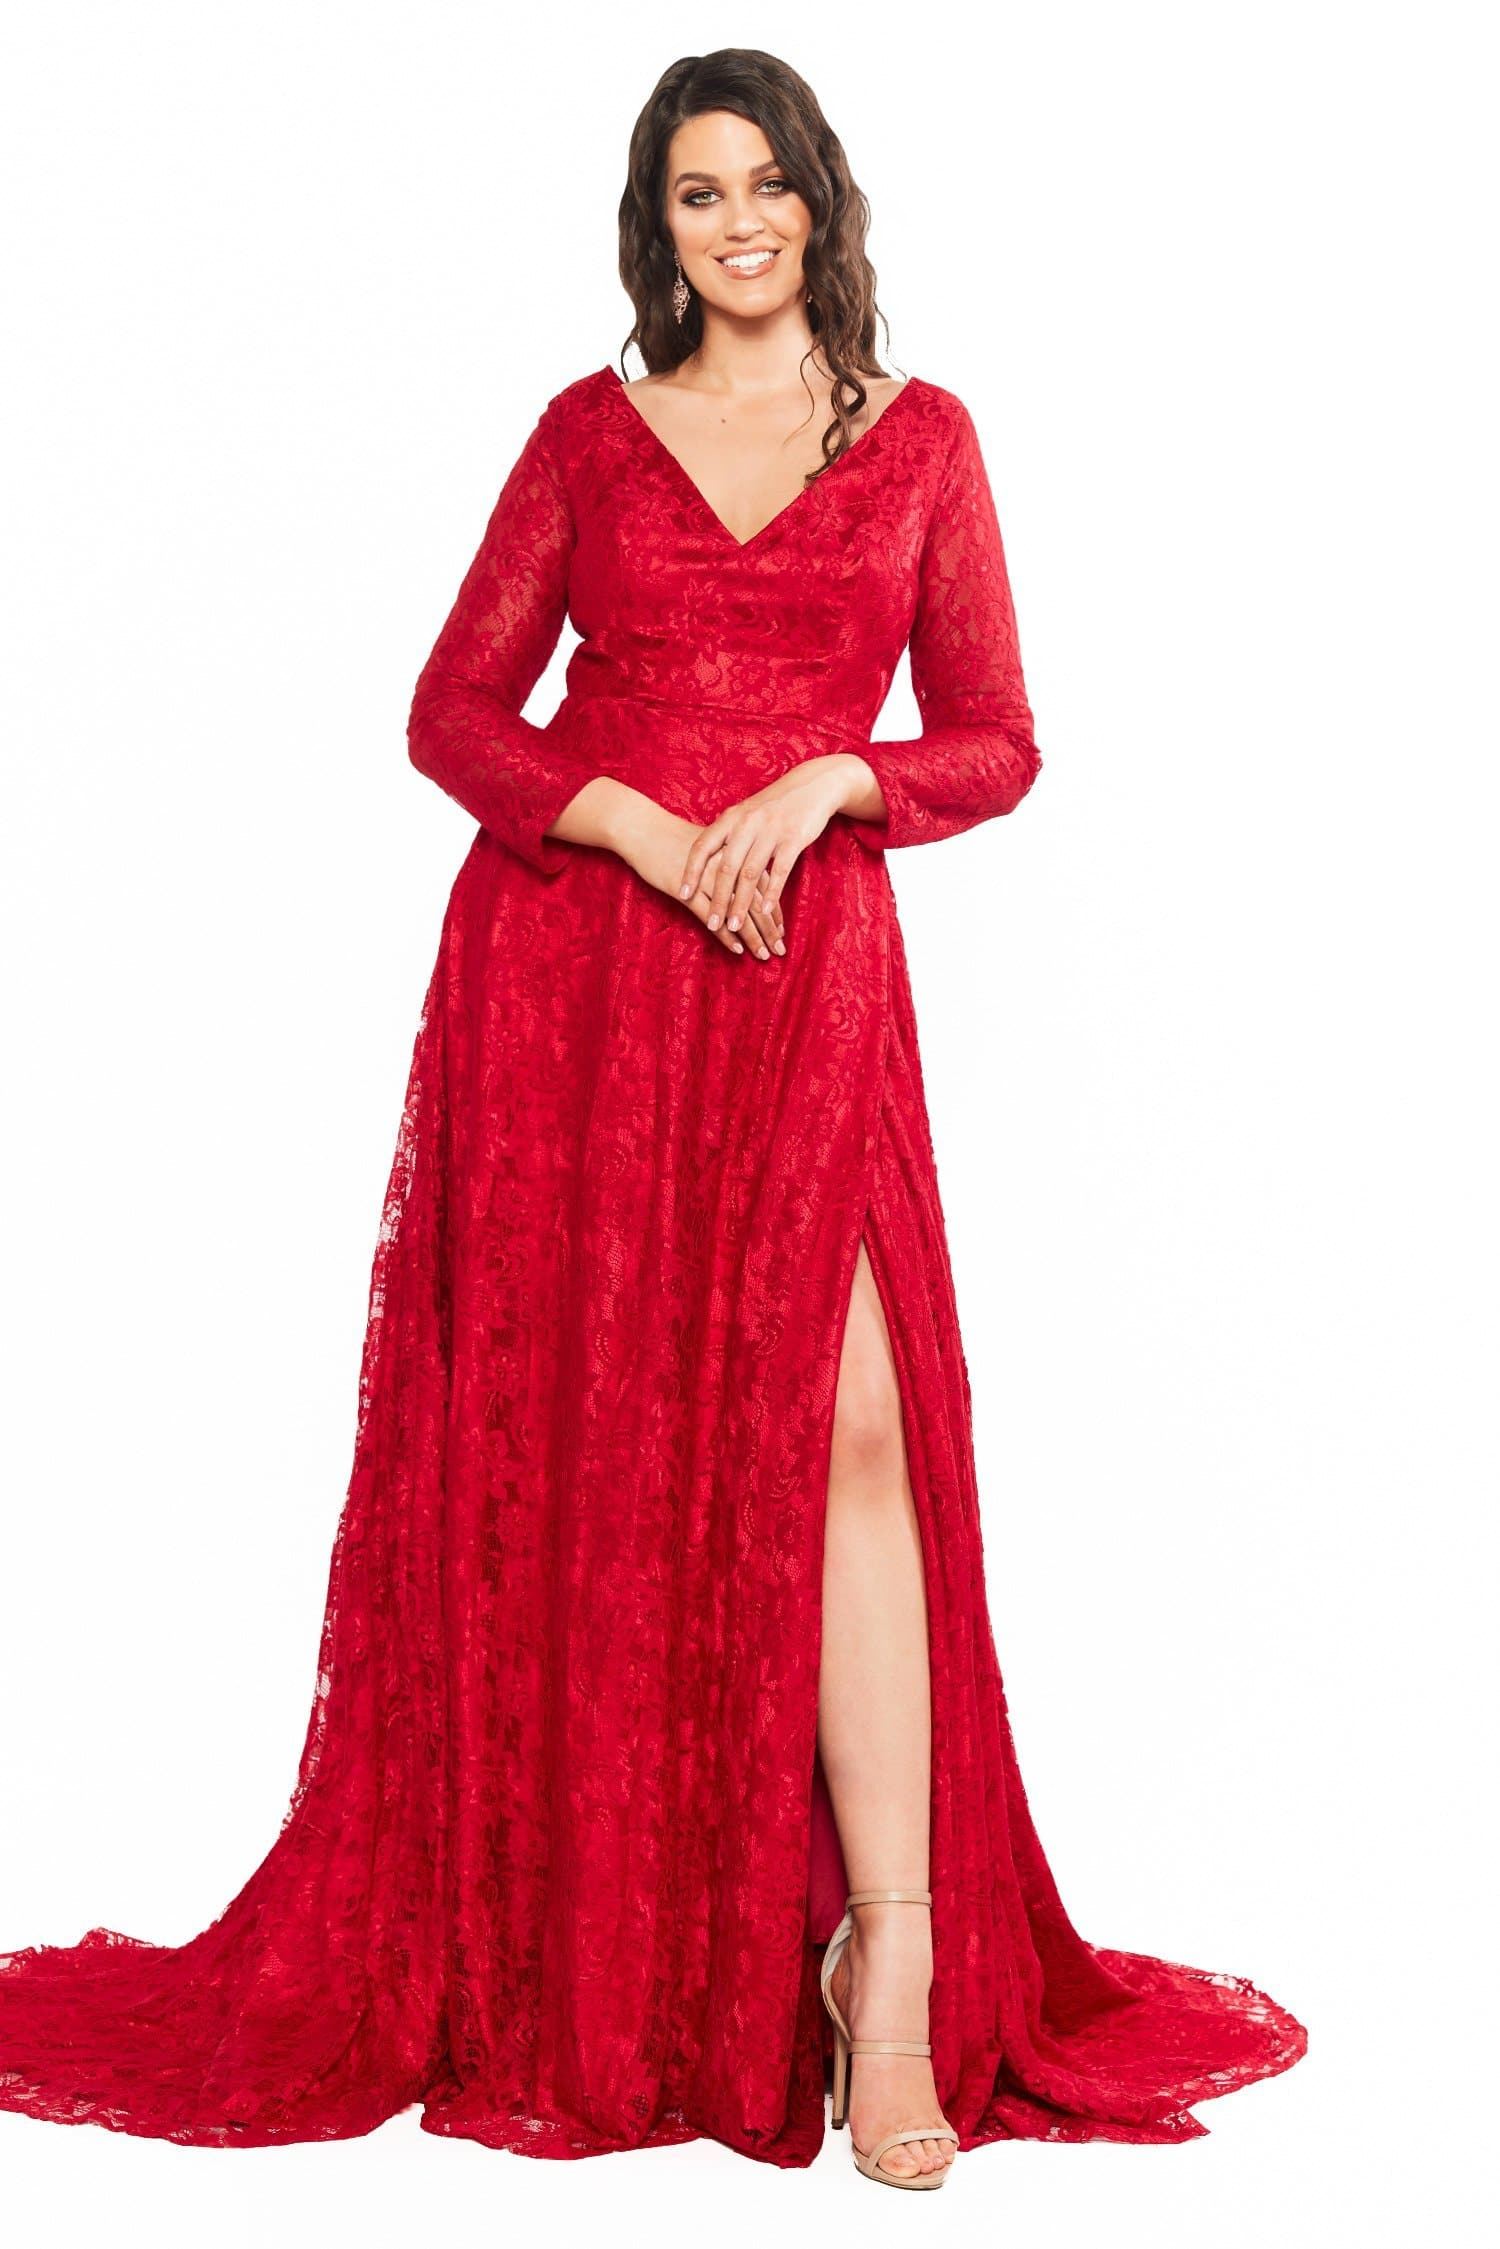 A&N Curve Gracie - Red Lace Gown with V-Neck, Long Sleeves & Side Slit